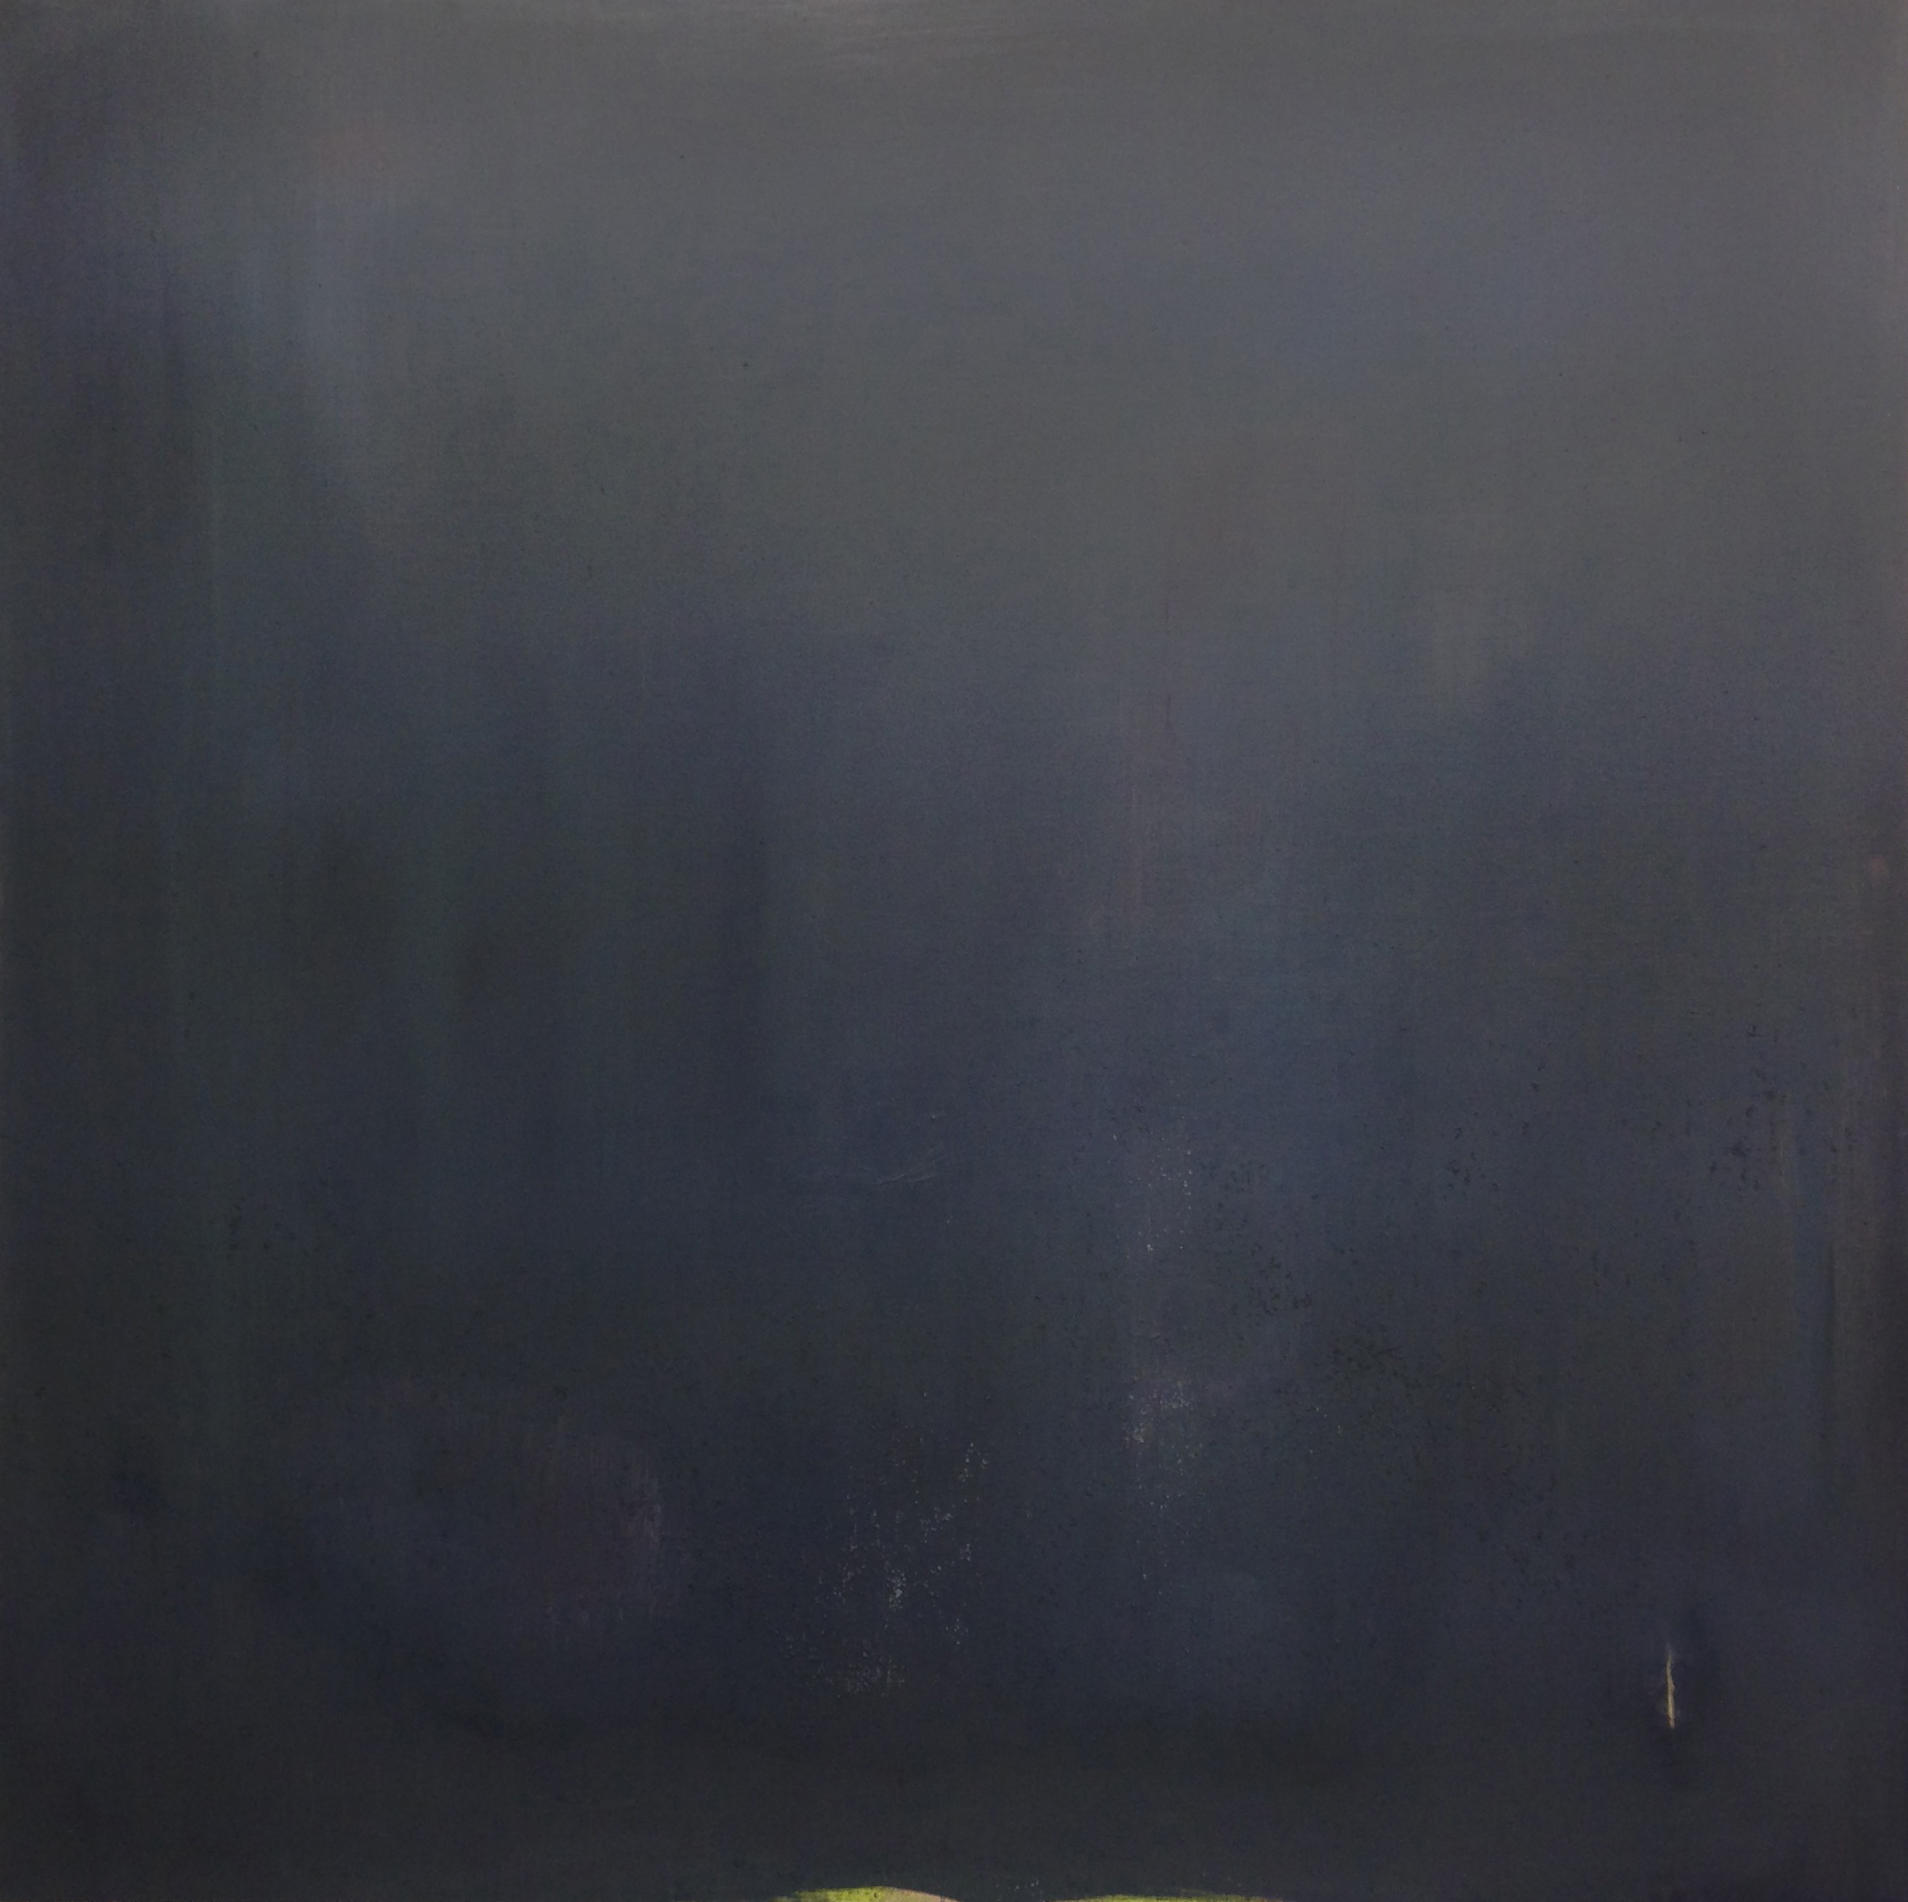 "Veil, 48"" x 48"", oil and chalk on panel, 2012"